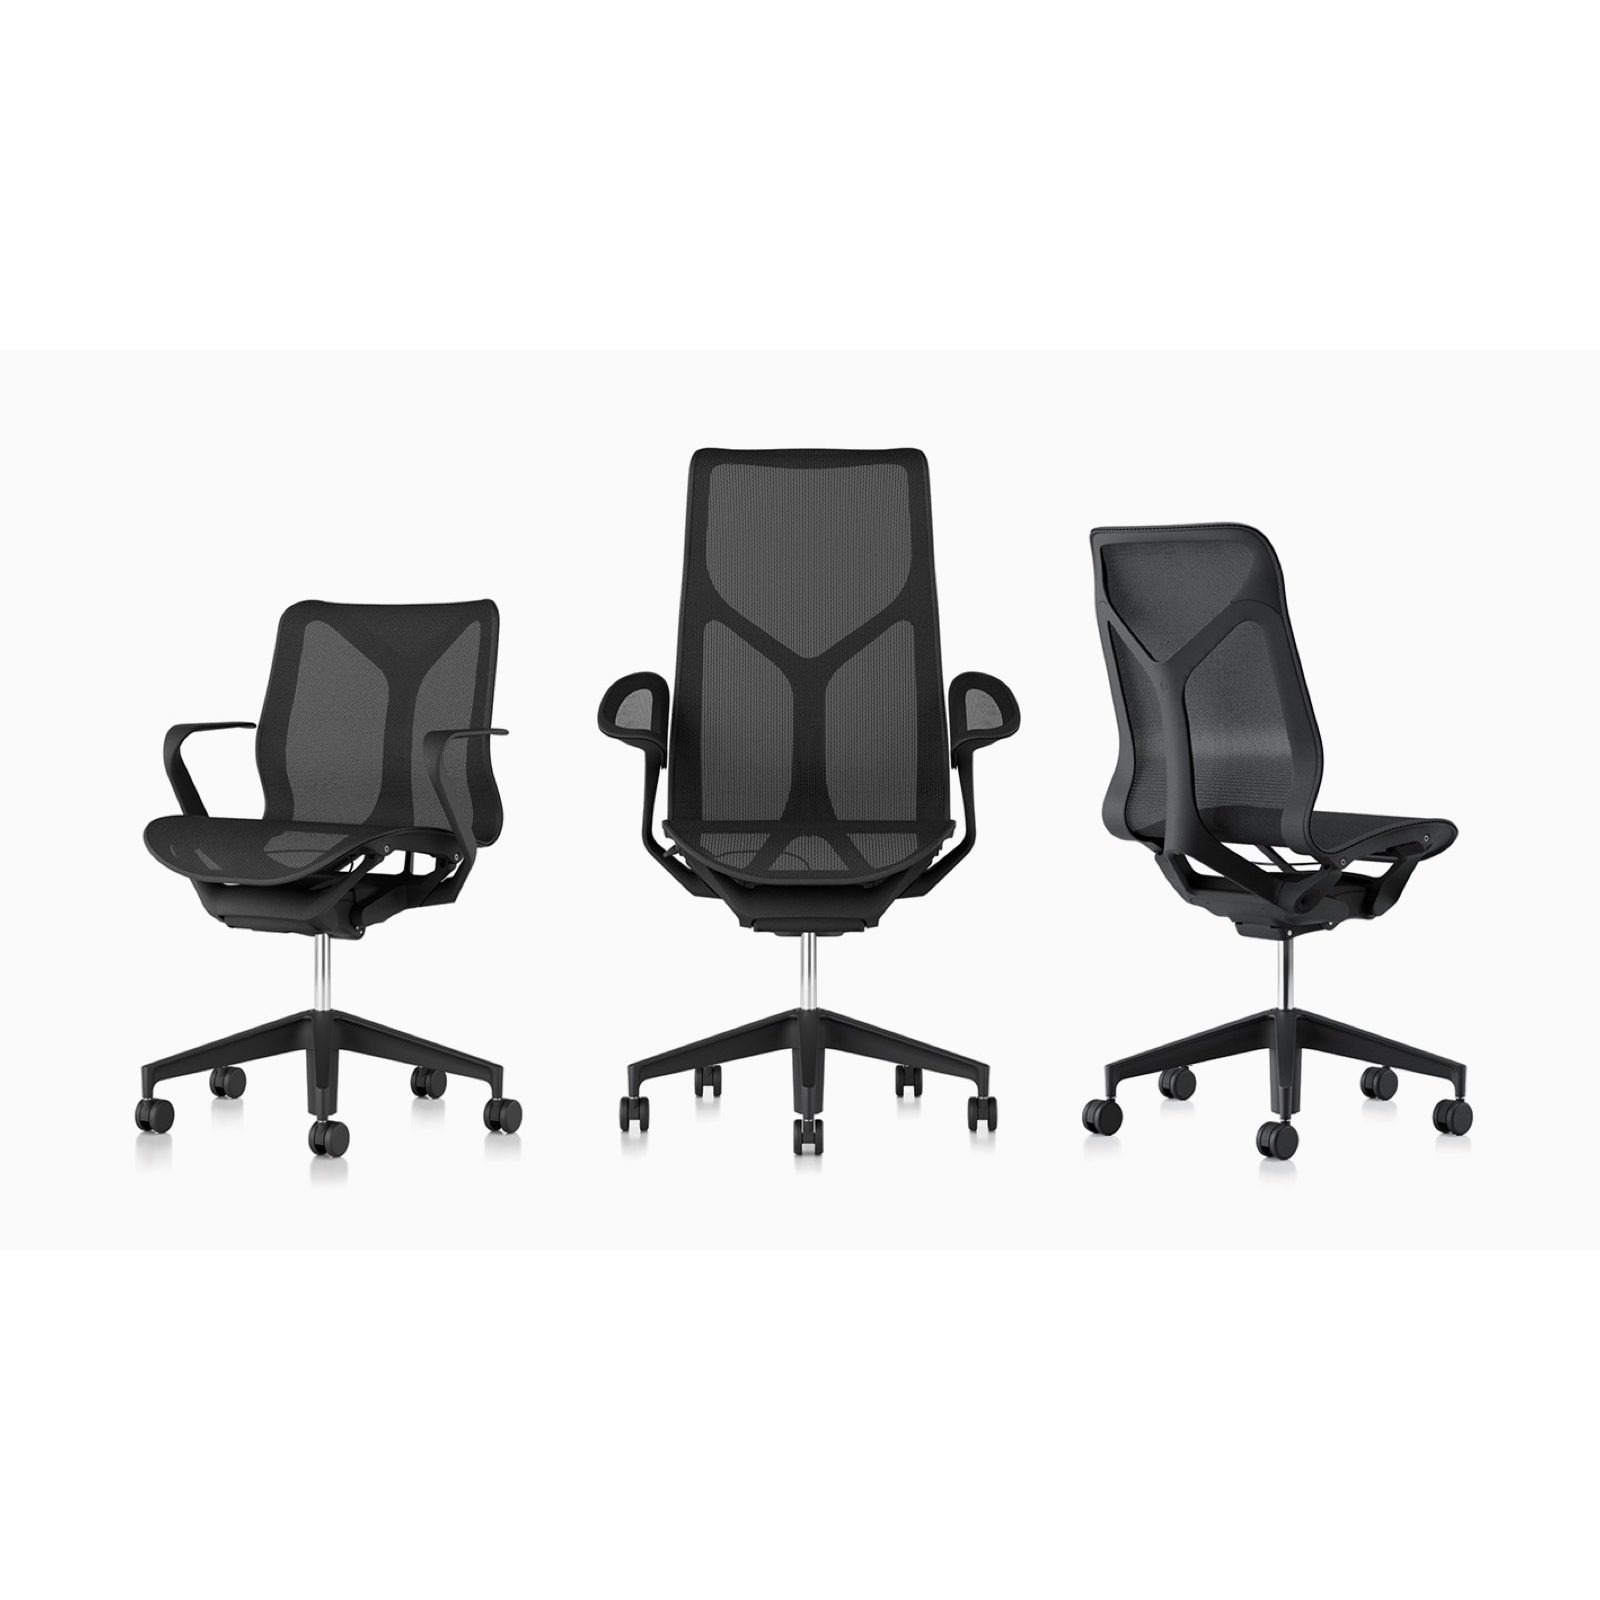 Cosm chairs graphite